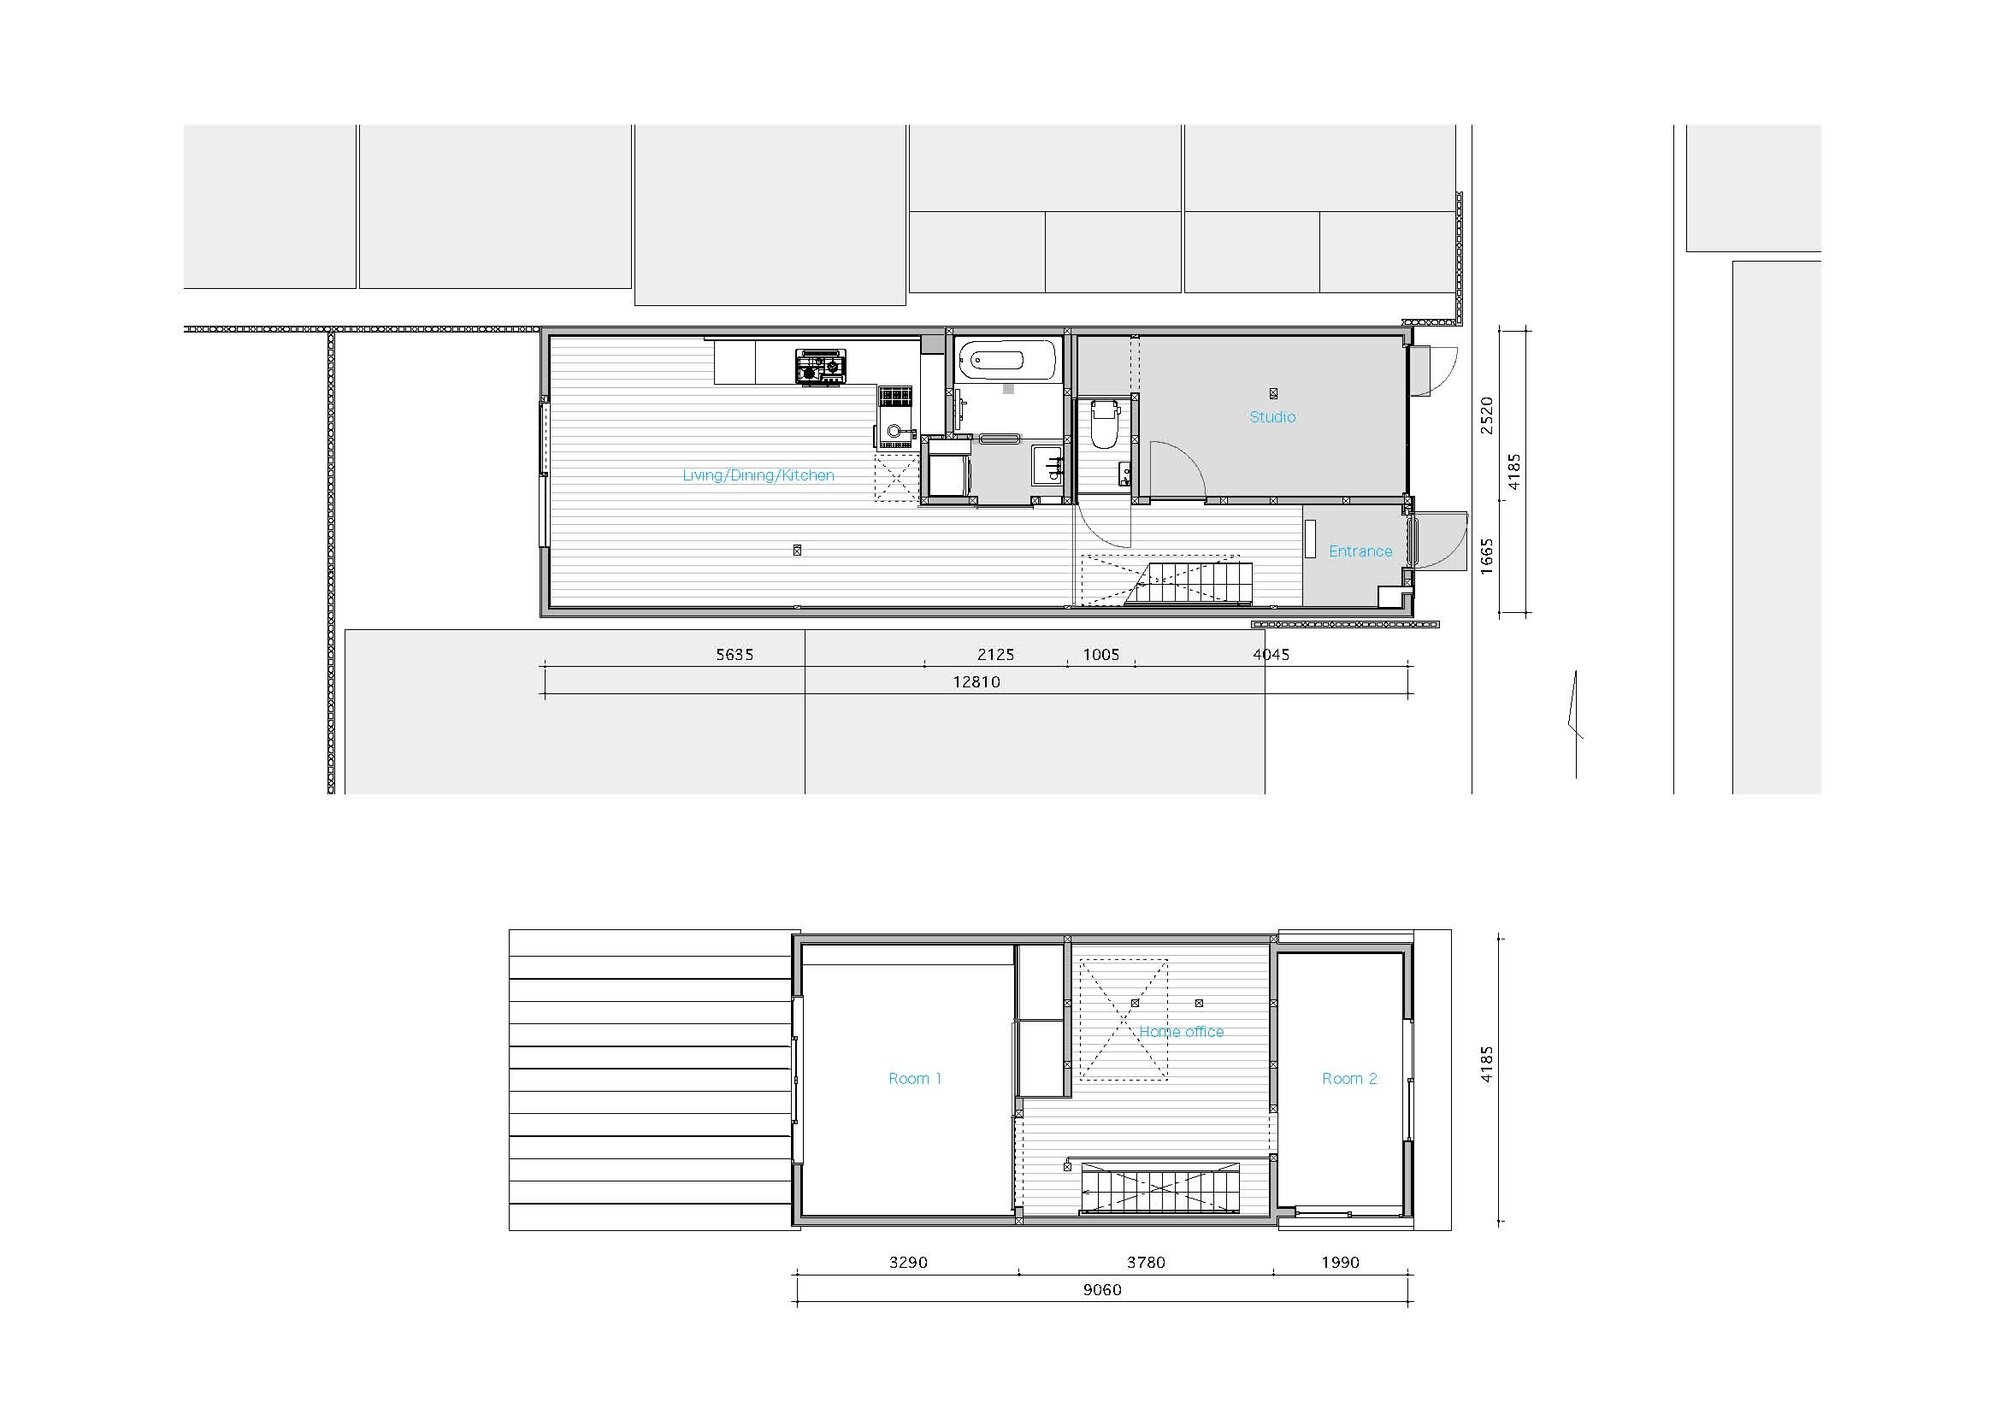 House in Shichiku Shimpei Oda Architect%E2%80%99s Office Small House Floor Plans Humble Homes - View Small House Design Archdaily Pictures